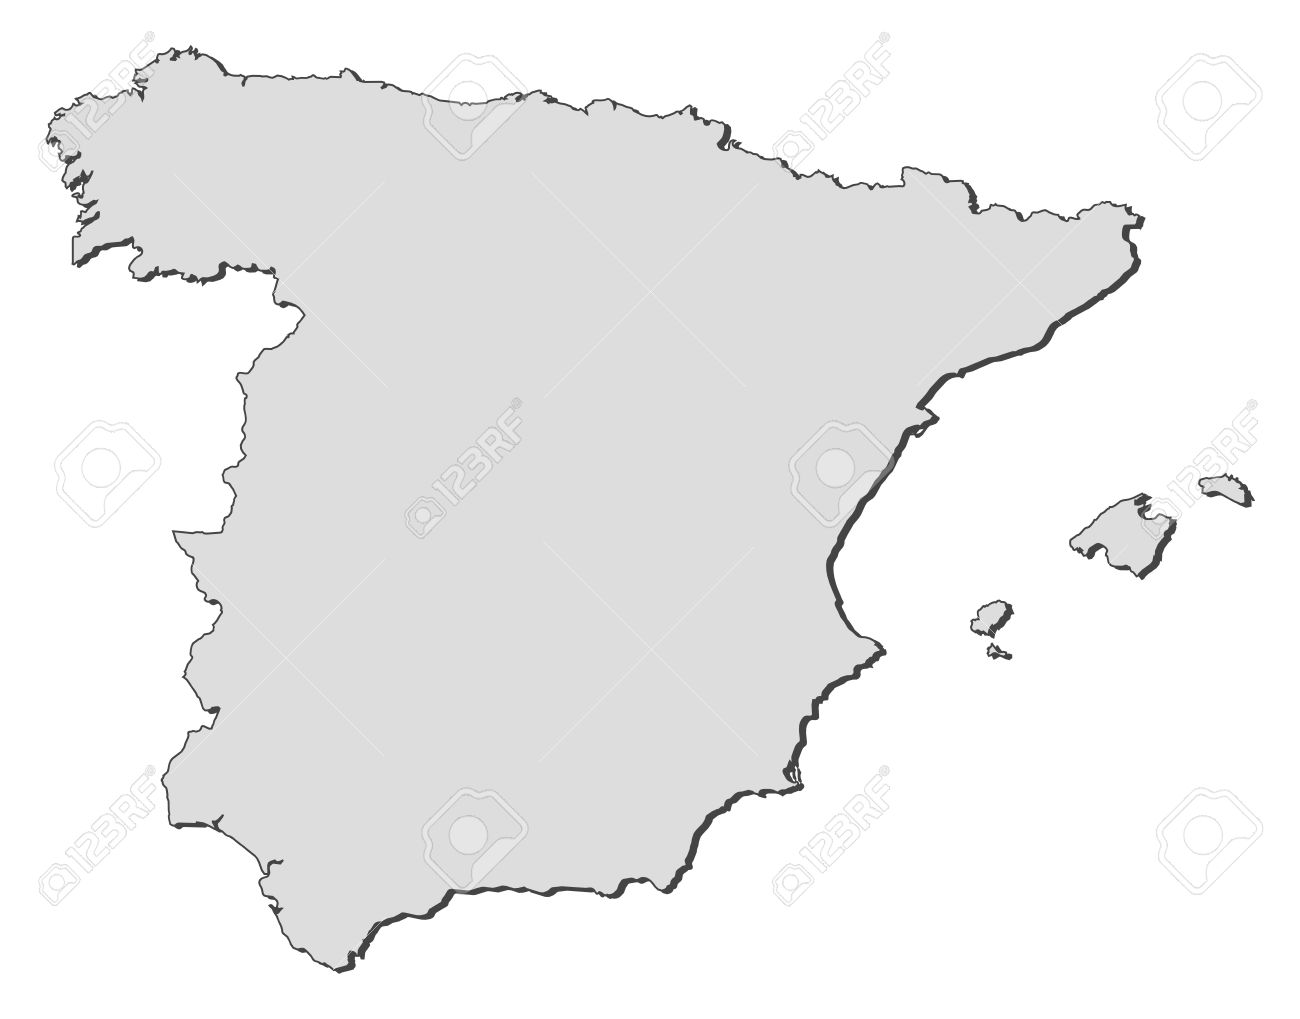 Plain White Spain Clipart Map.